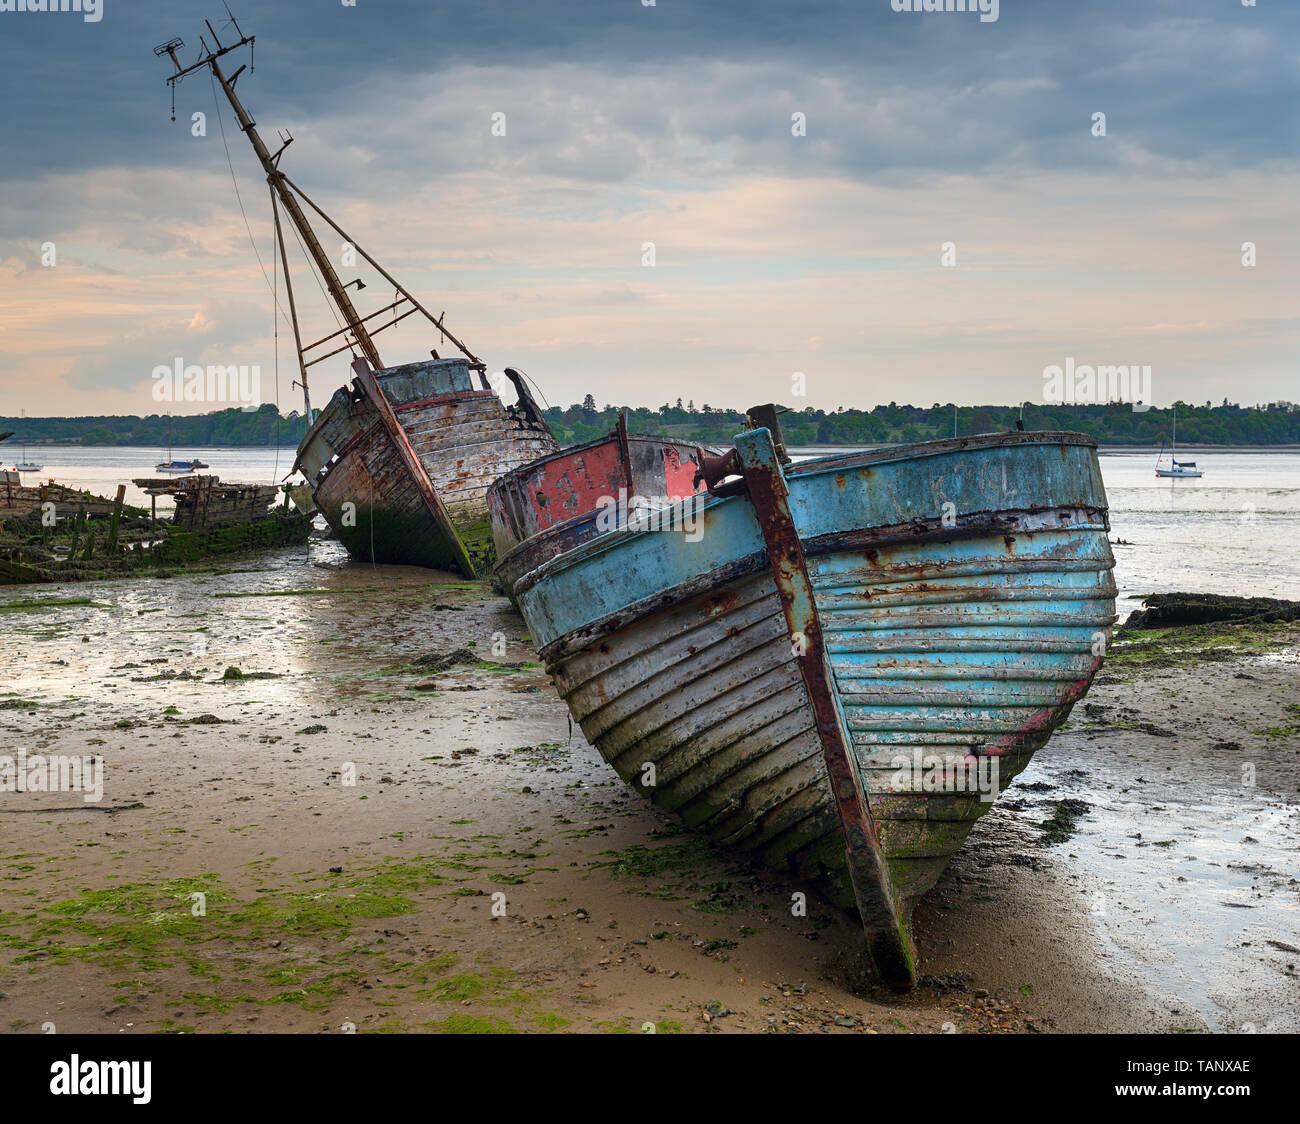 Old abandoned fishing boats at Pin Mill on the banks of the River Orwell on the Shotley peninsula near Ipswich on the Suffolk coastline Stock Photo